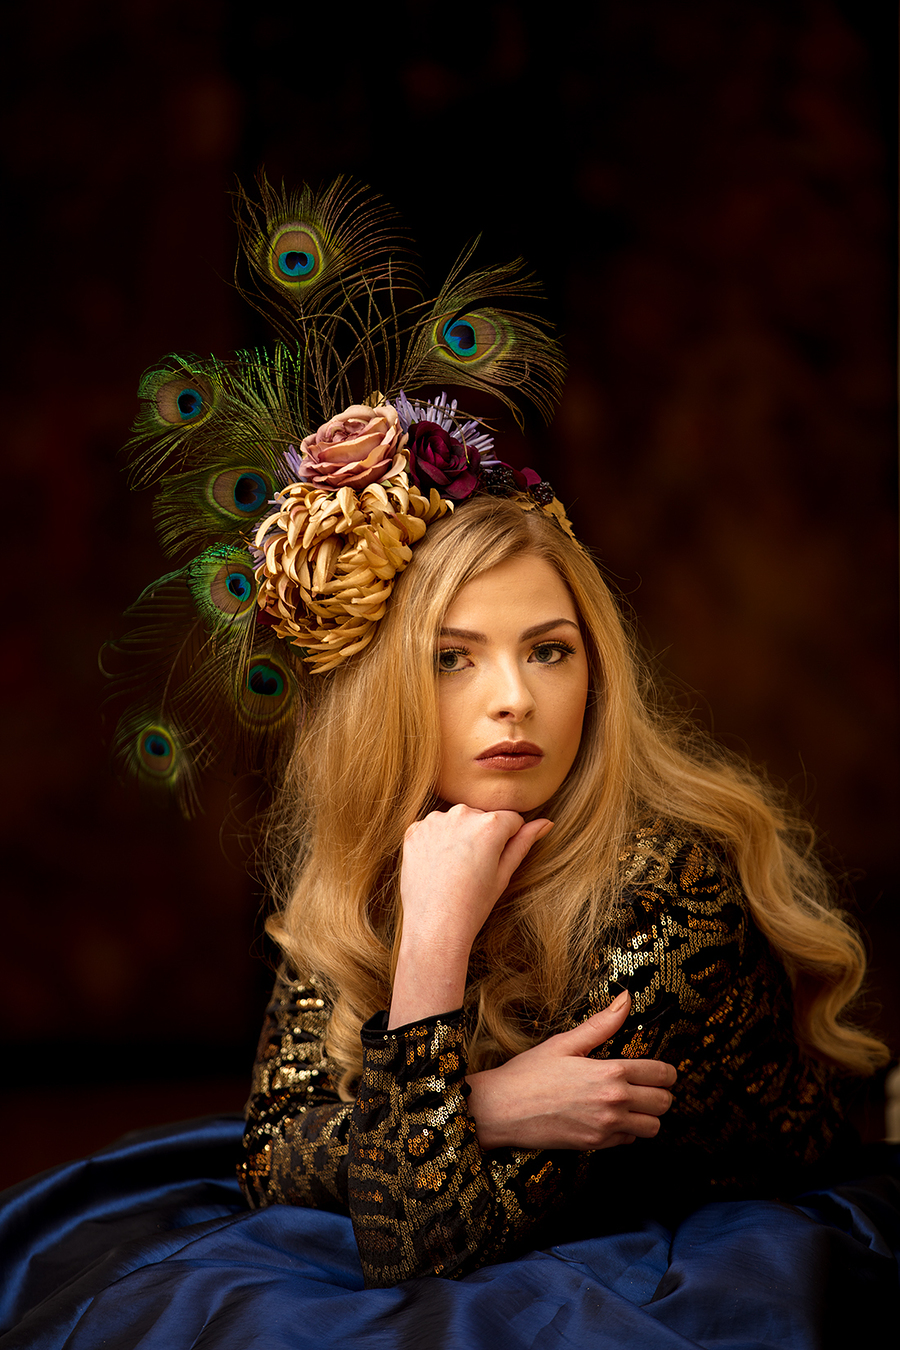 Kirsty and the peacock feathers / Photography by jakabi, Post processing by jakabi / Uploaded 27th November 2016 @ 06:08 PM